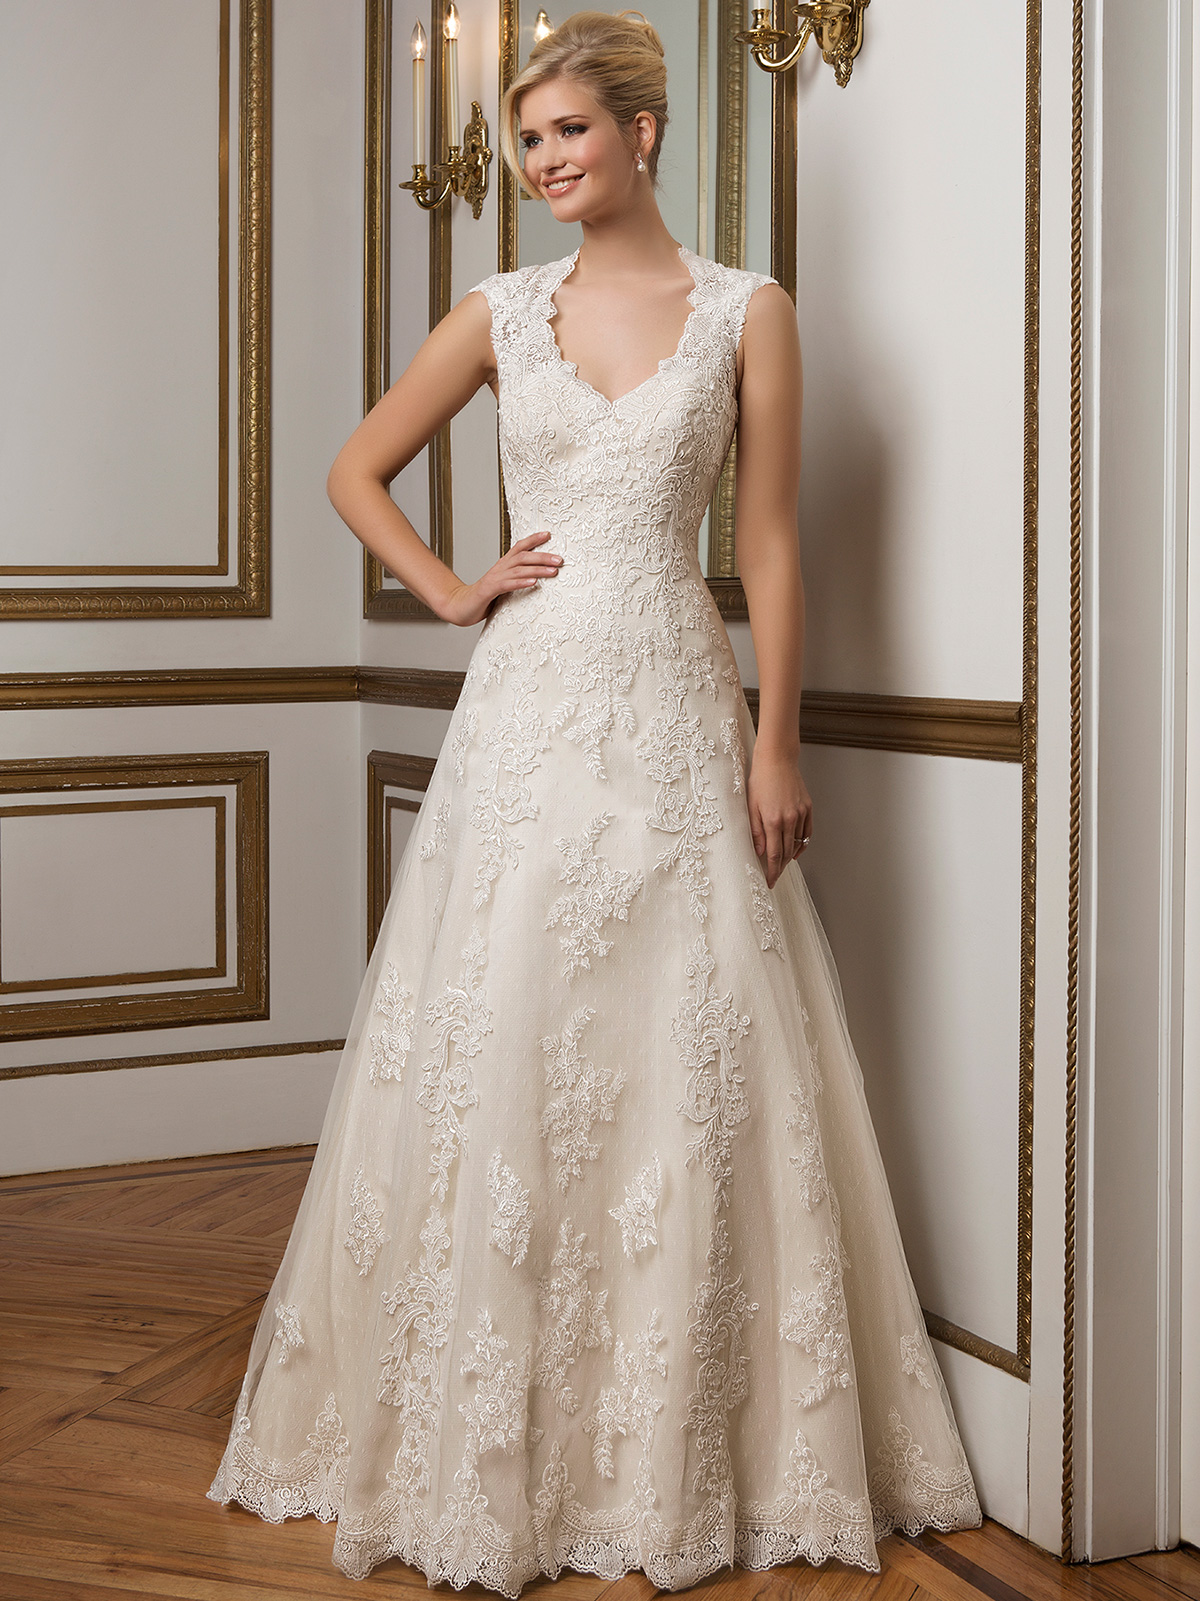 Justin alexander 8822 queen anne bridal dress for Dress of wedding style